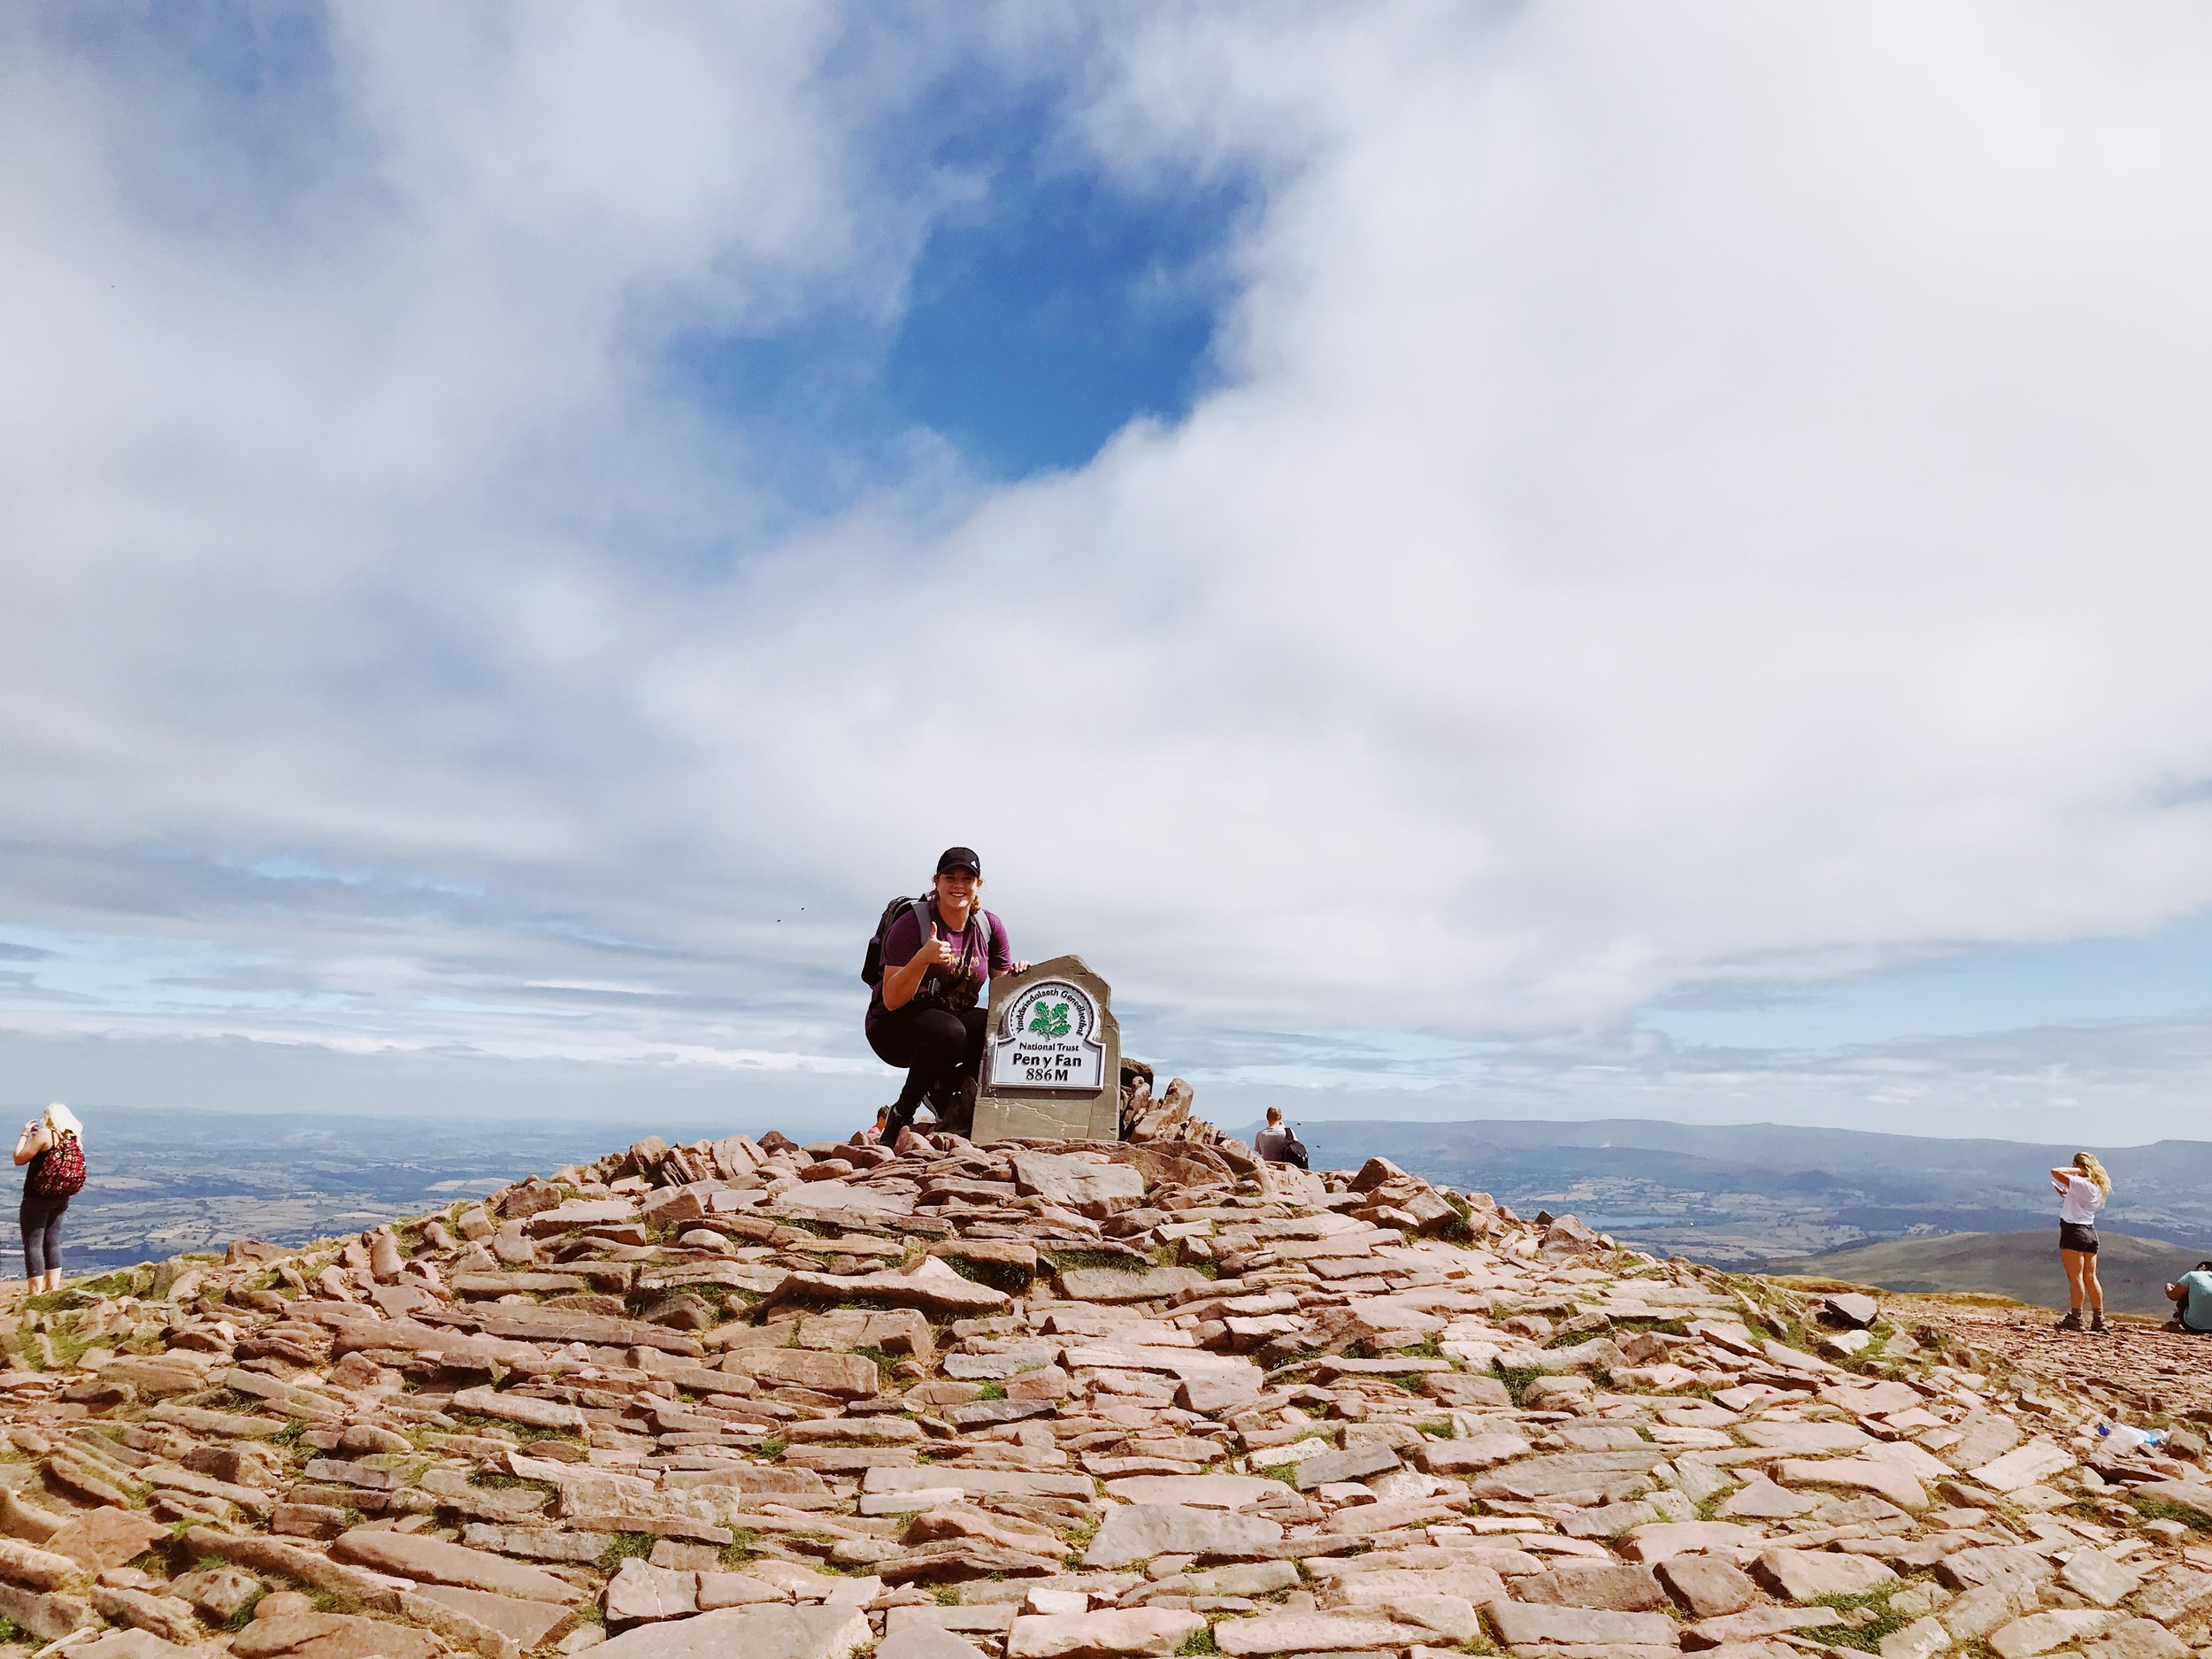 At the top of Pen y Fan at Brecon Beacons National Park in Wales